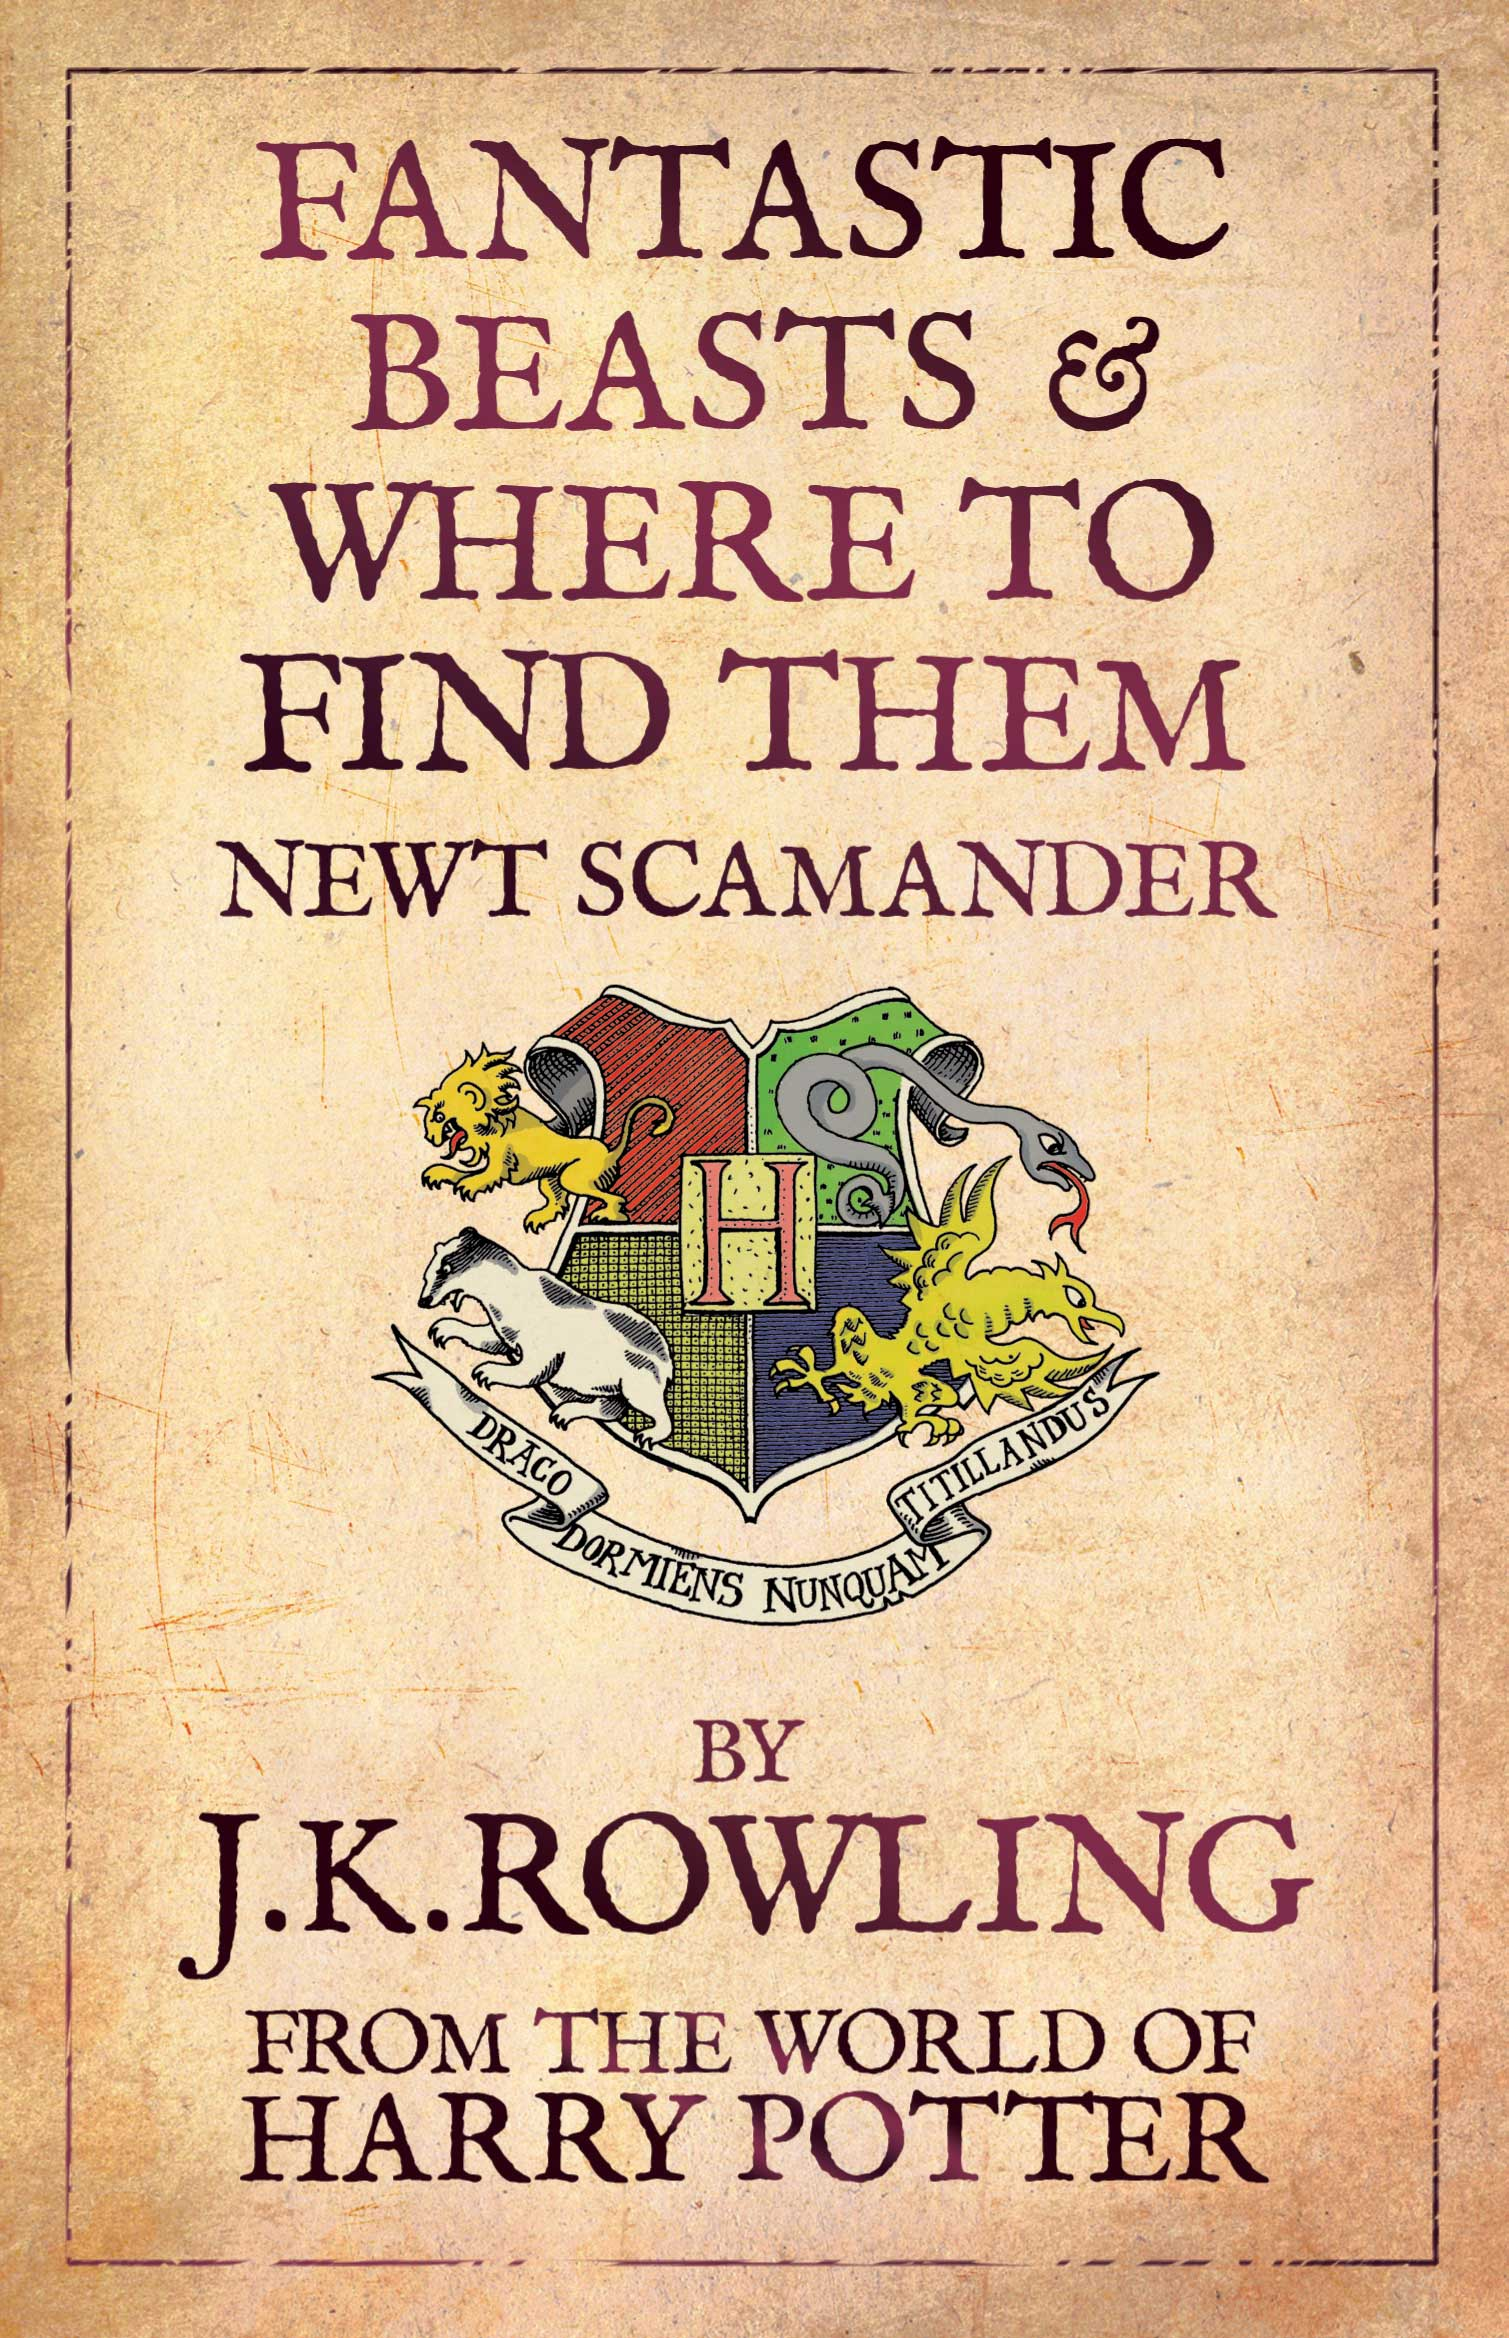 Fantastic Beasts and Where to Find Them by J. K. Rowling (Paperback, 2009)